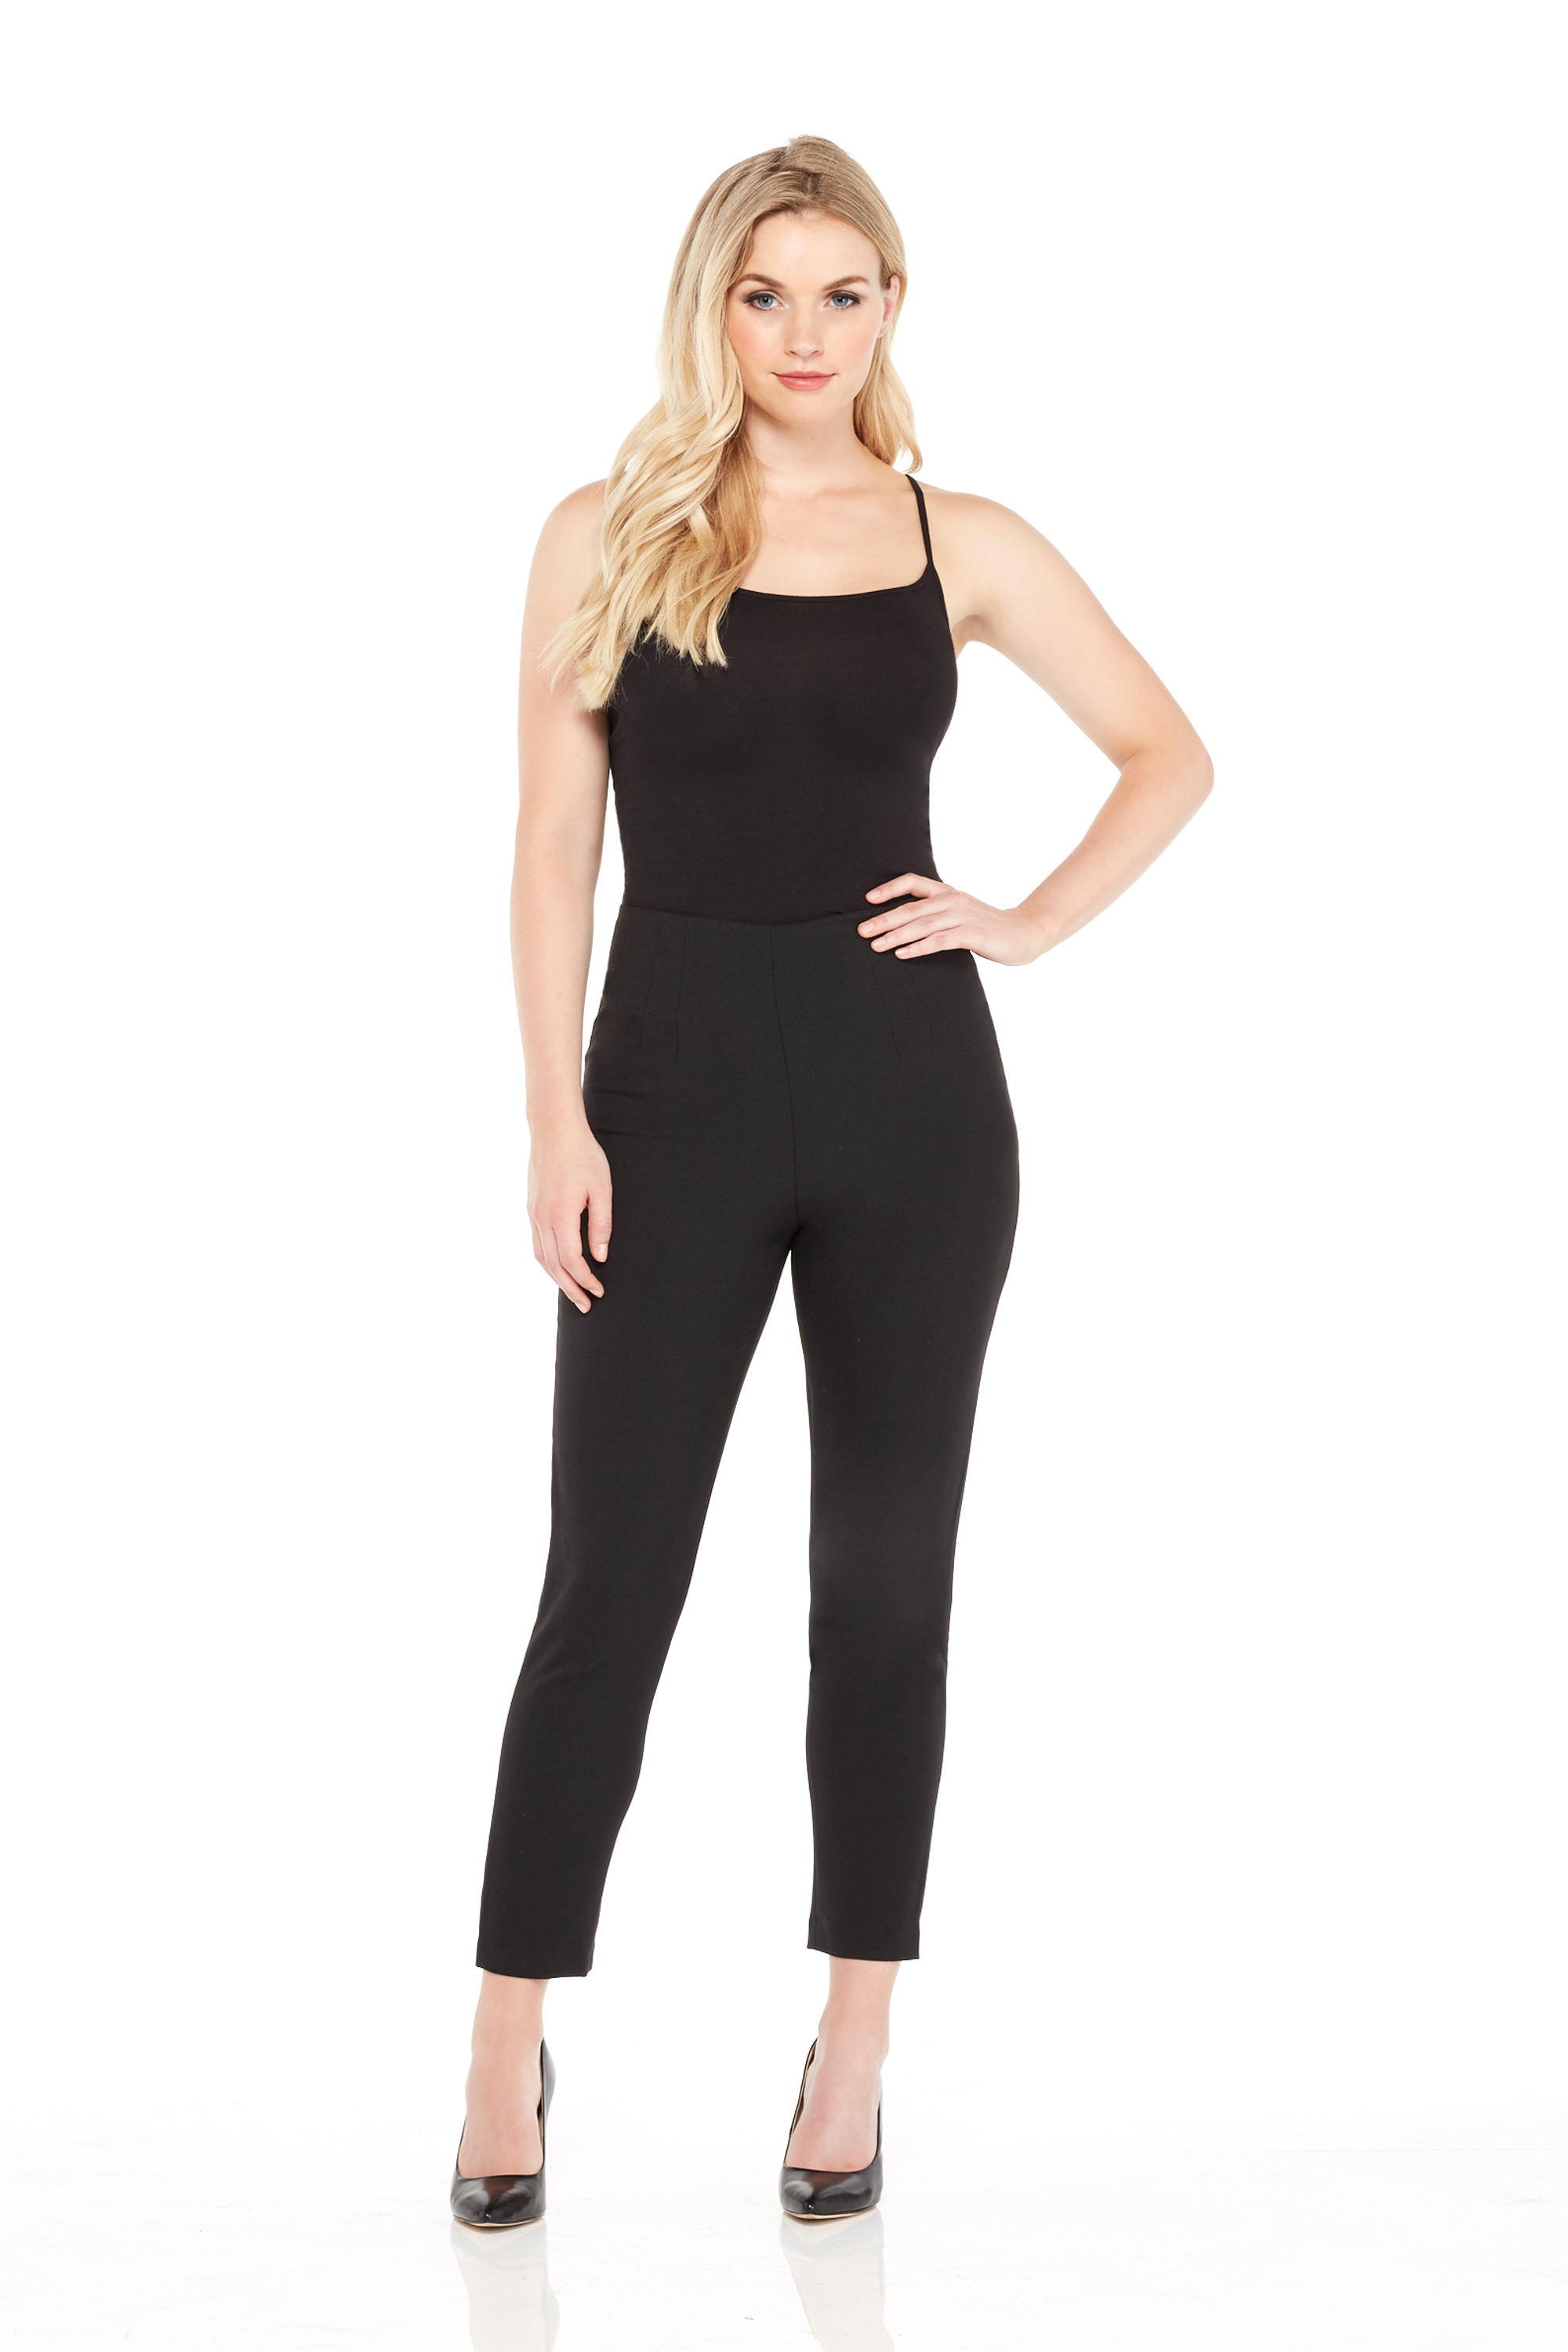 The Universal Pant   $79